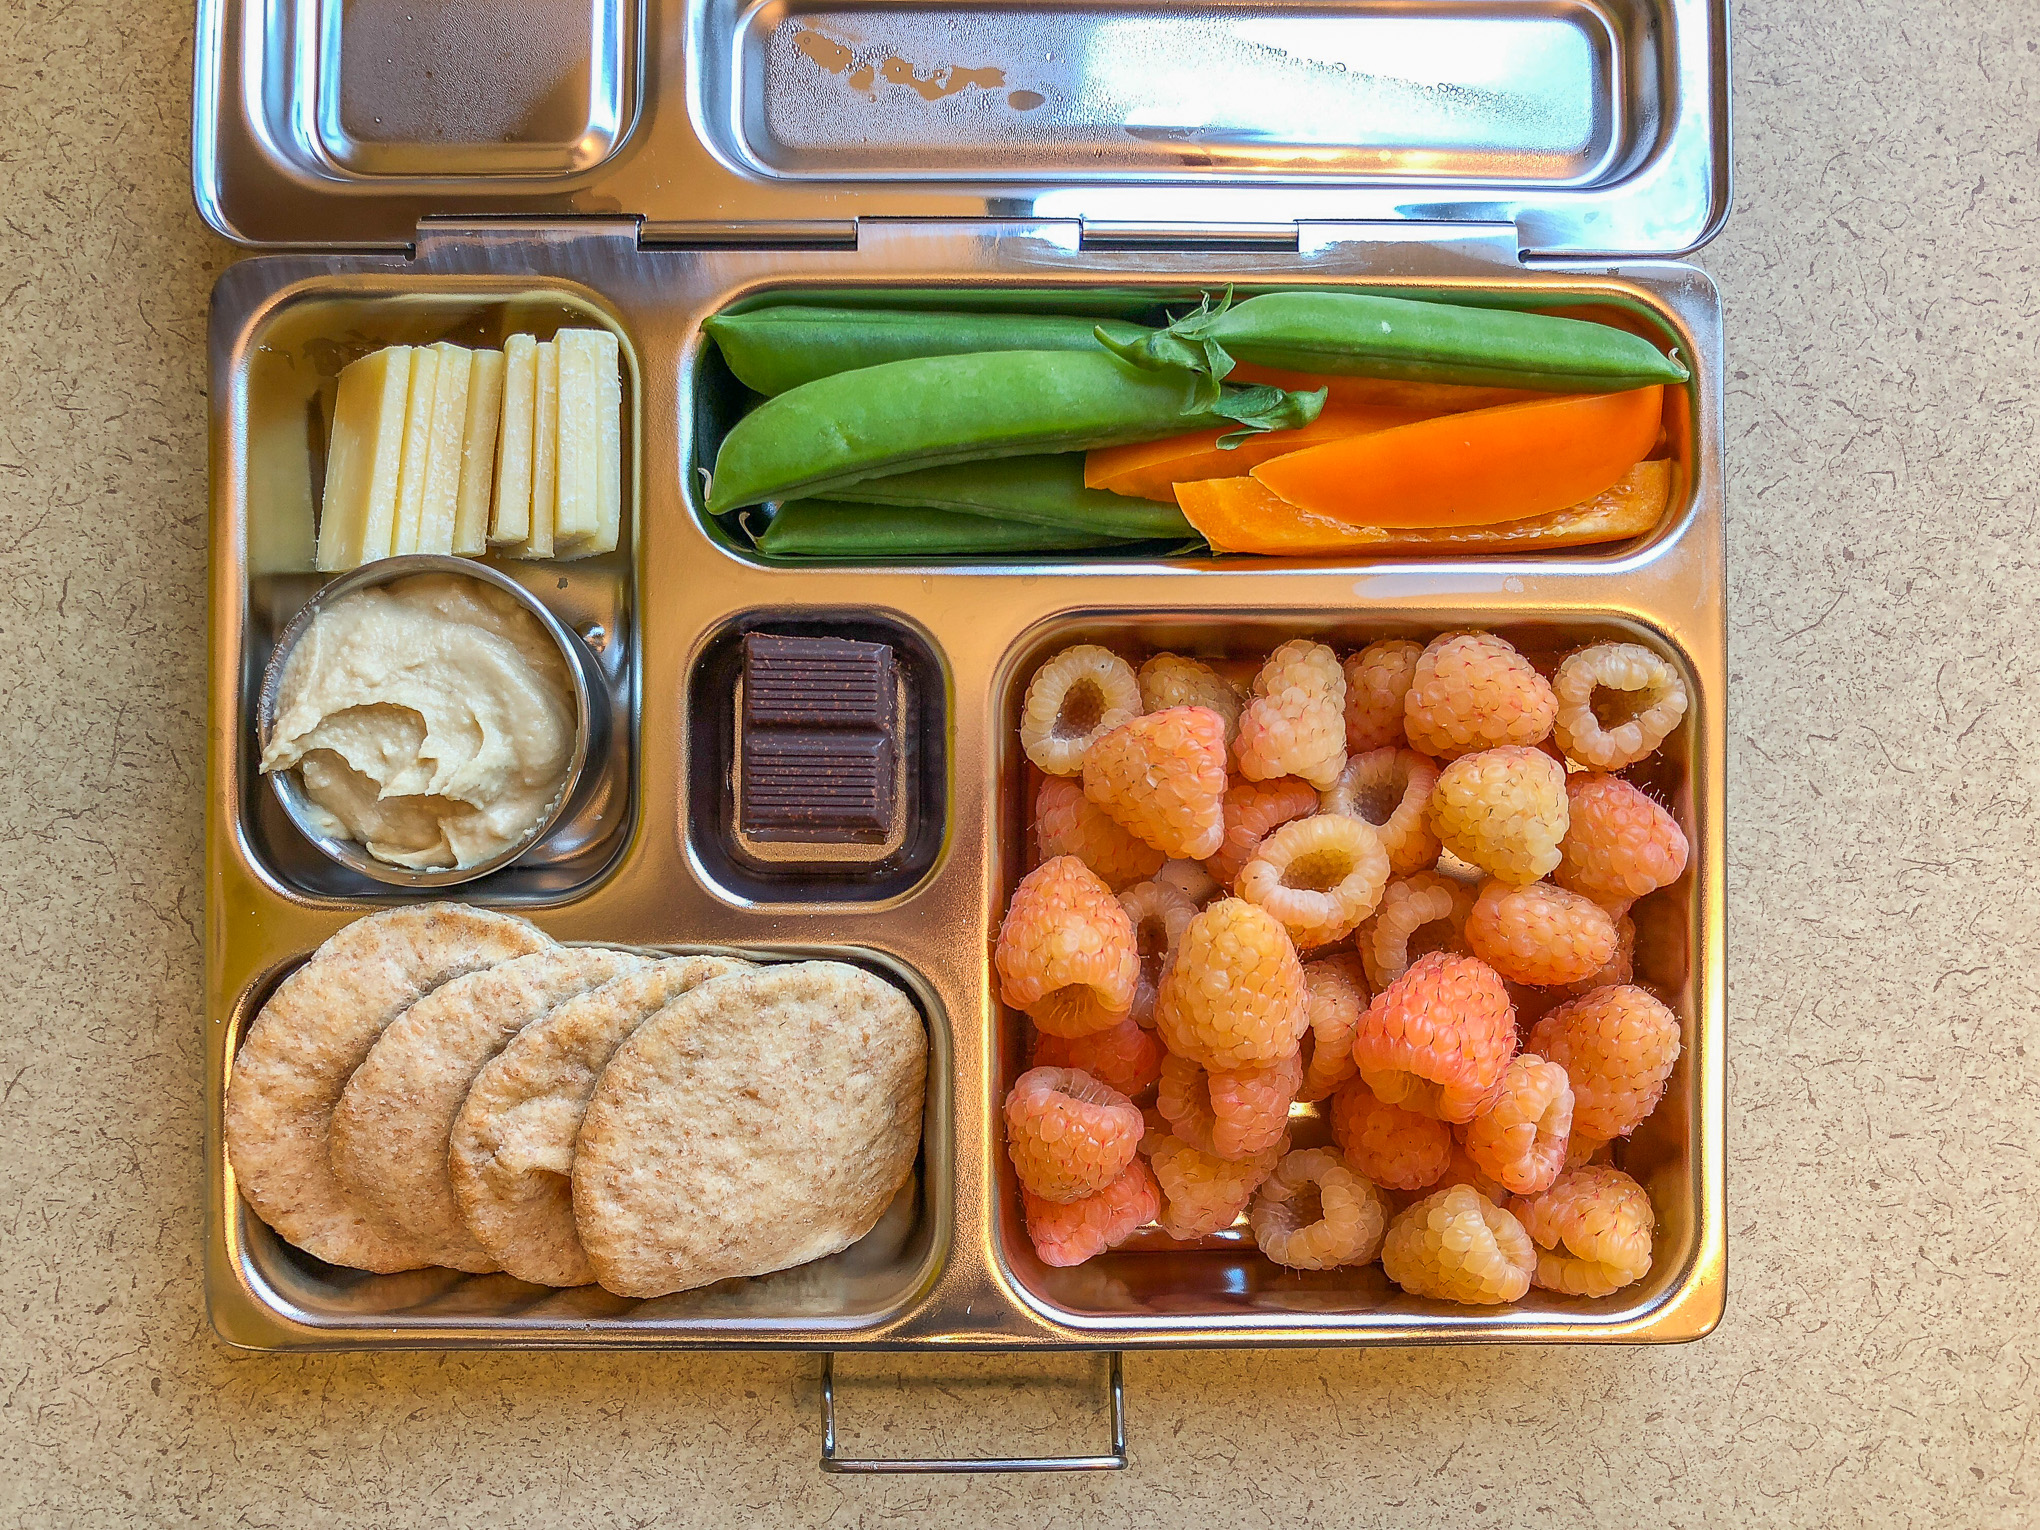 Metal lunch box filled with fruit and veggies